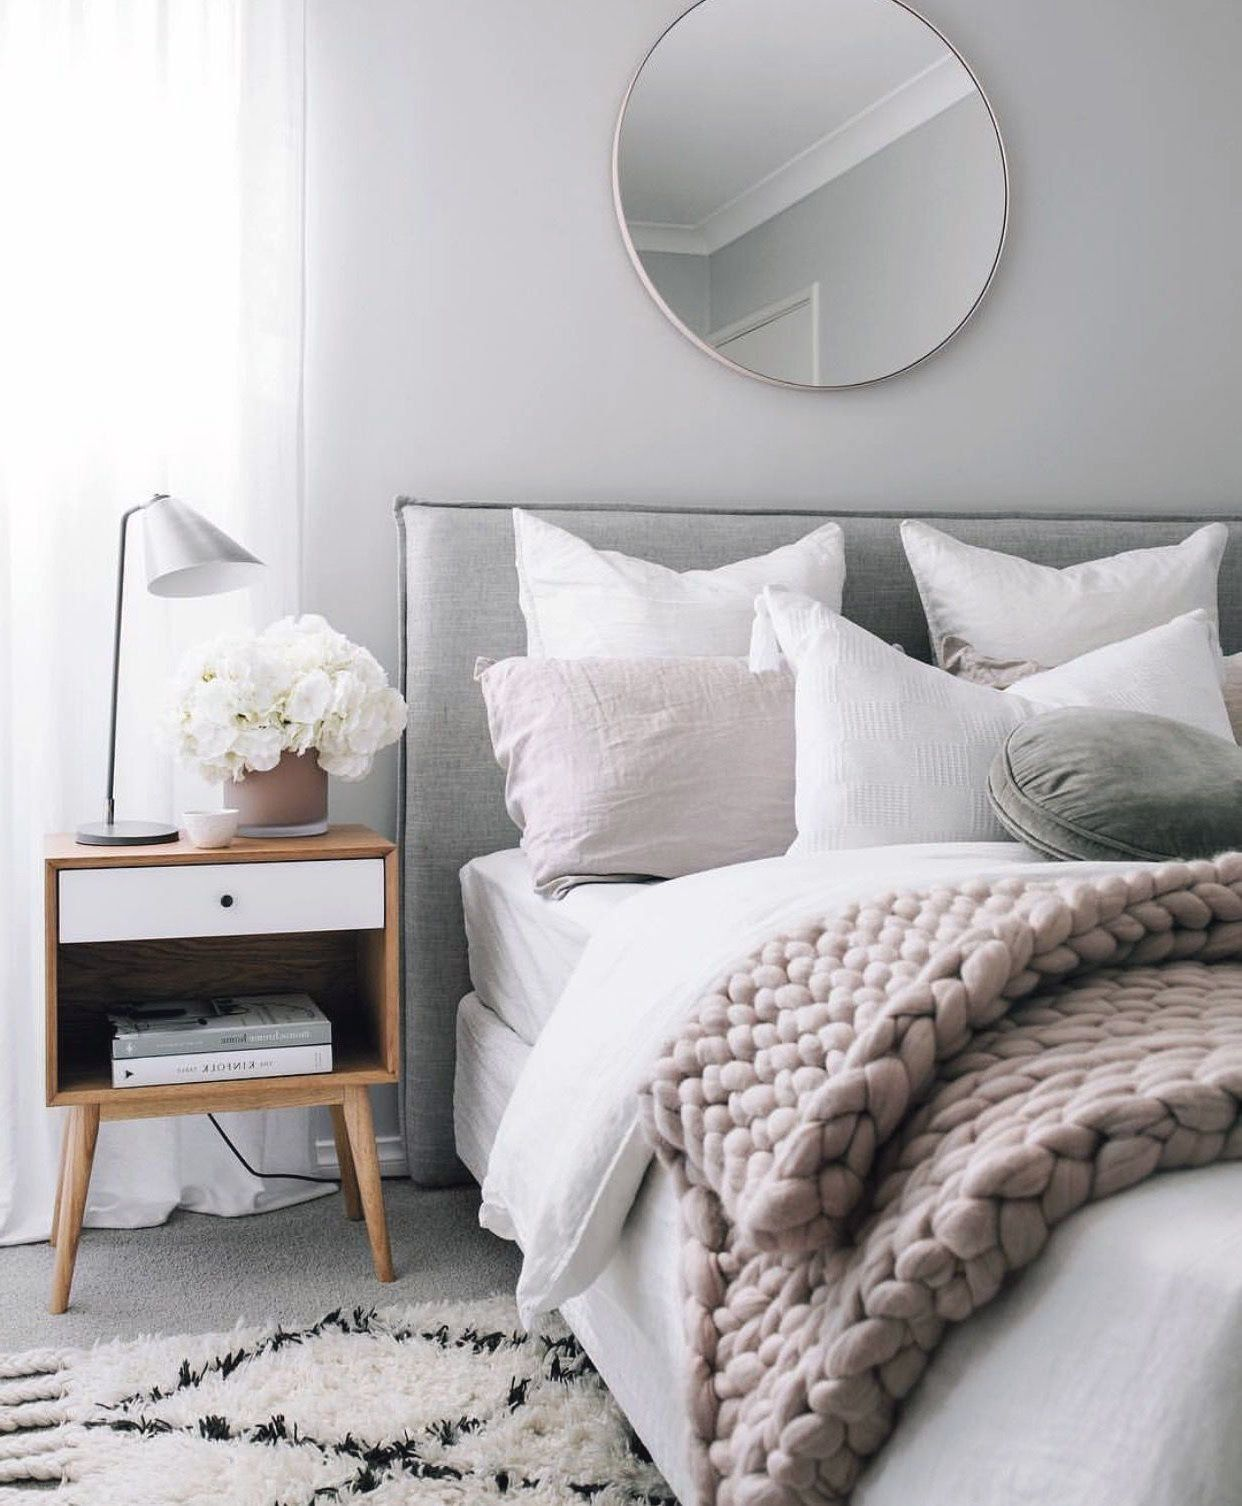 Obtain More Glamorous Grey Scandinavian Interior Bedroom Ideas 5 27 Grey Sc In 2020 Scandinavian Bedroom Decor Scandinavian Interior Bedroom Scandinavian Style Bedroom